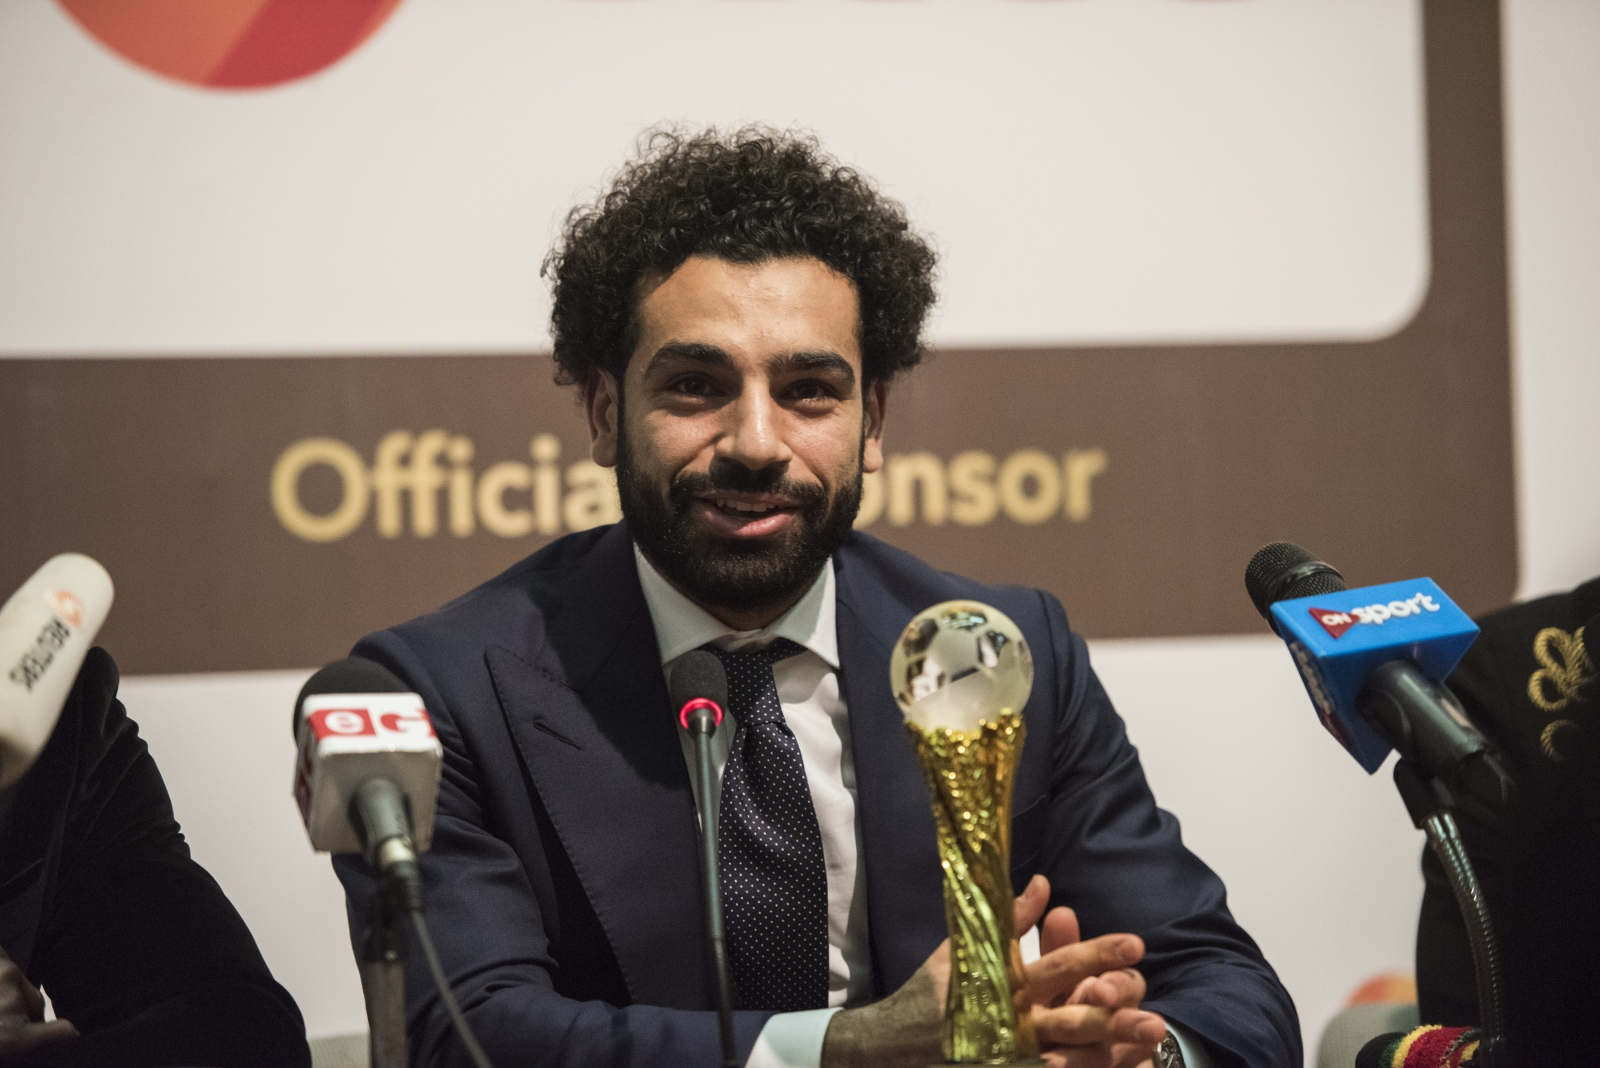 Liverpool Star Mohamed Salah Wins African Player of the Year Award